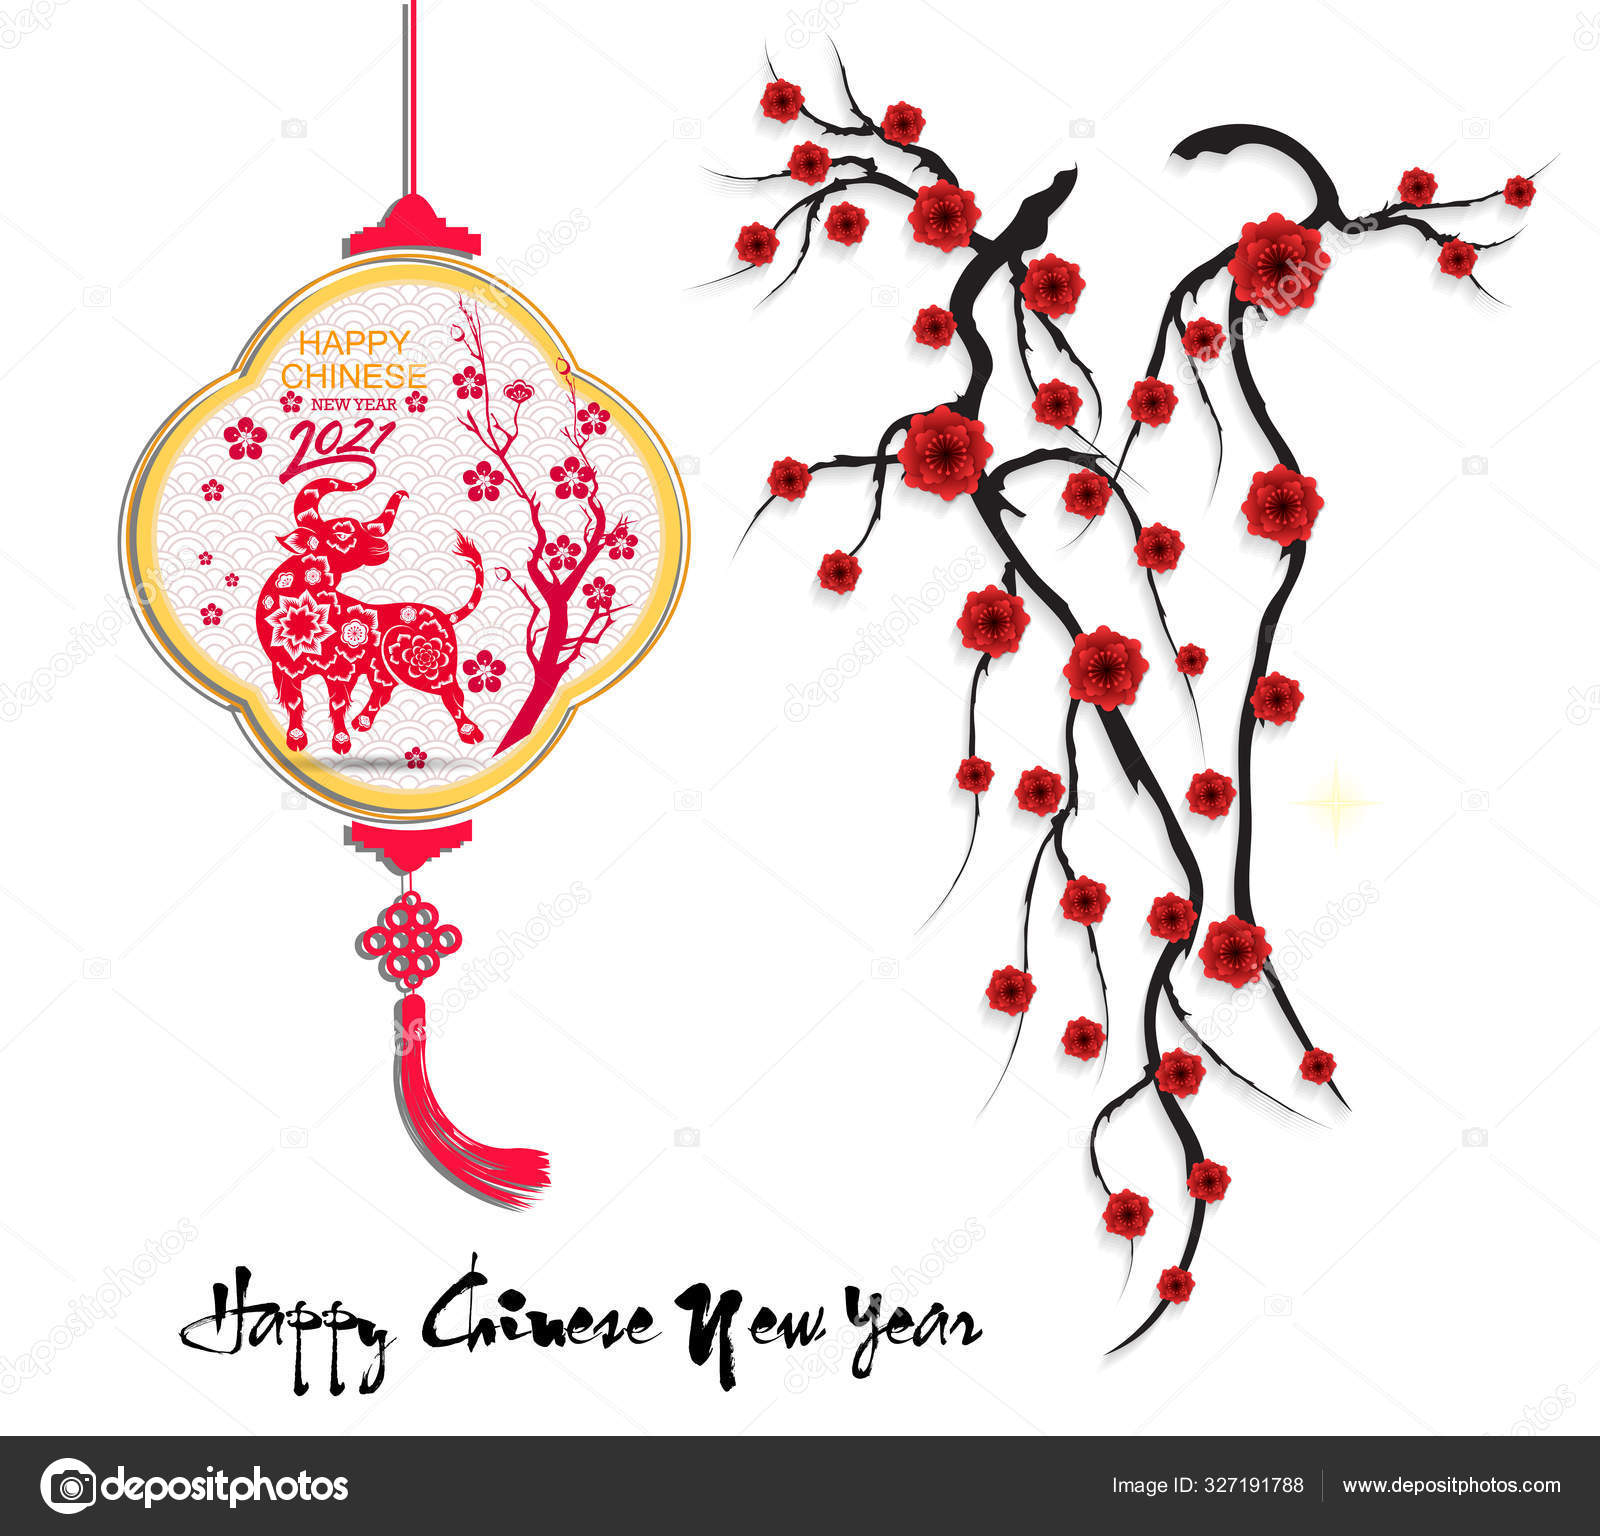 happy chinese new year 2021 year flower asian elements craft stock vector c tieulong 327191788 https depositphotos com 327191788 stock illustration happy chinese new year 2021 html